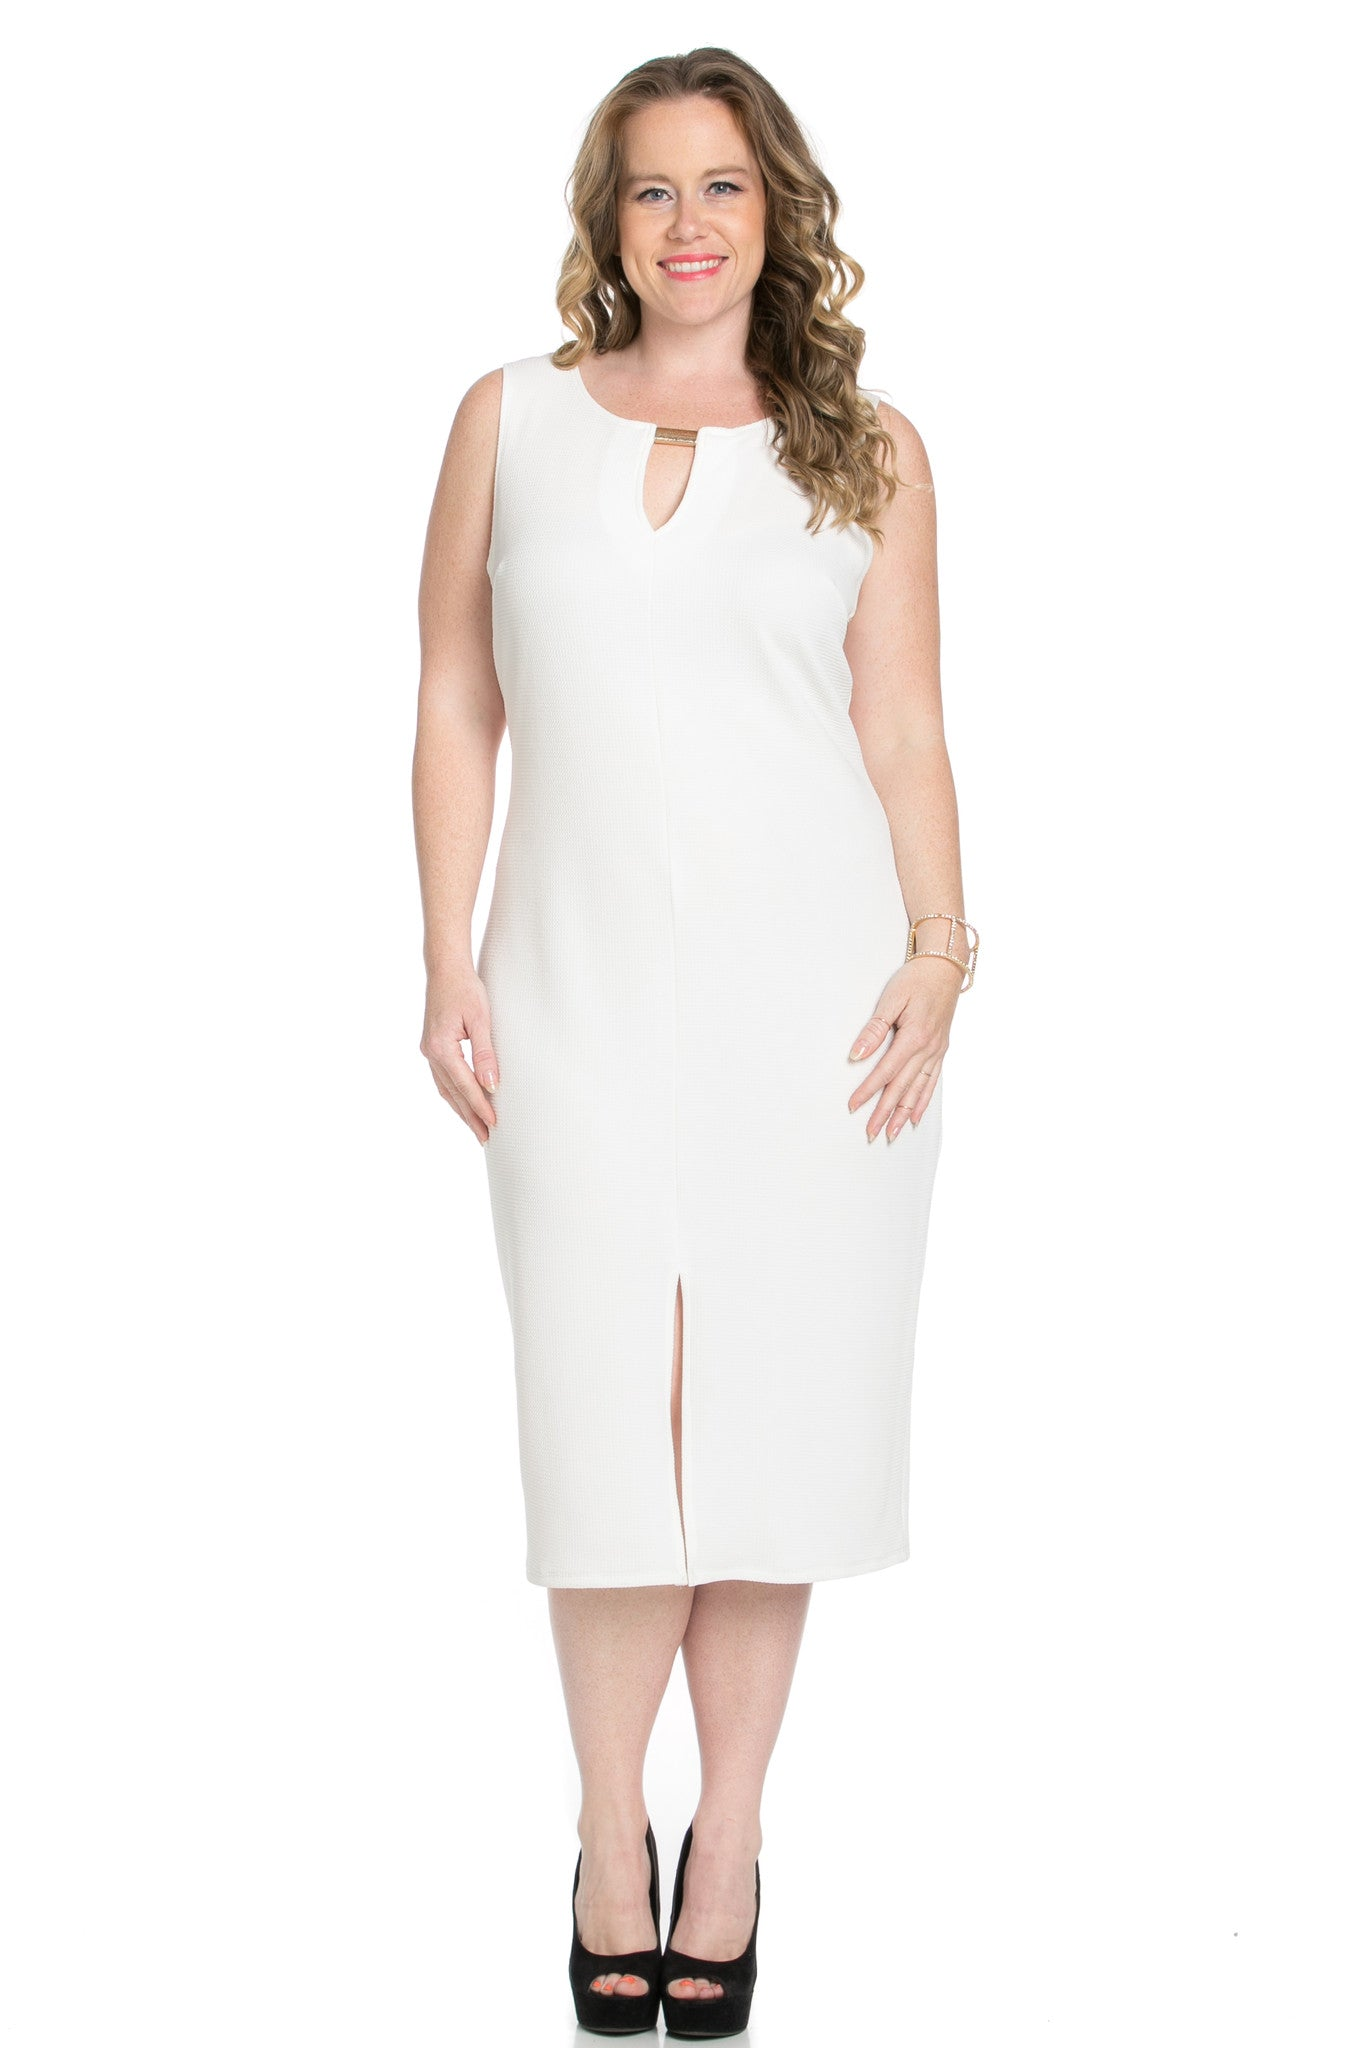 White Modest a Bit with Bare Shoulders Dress - Dresses - My Yuccie - 3